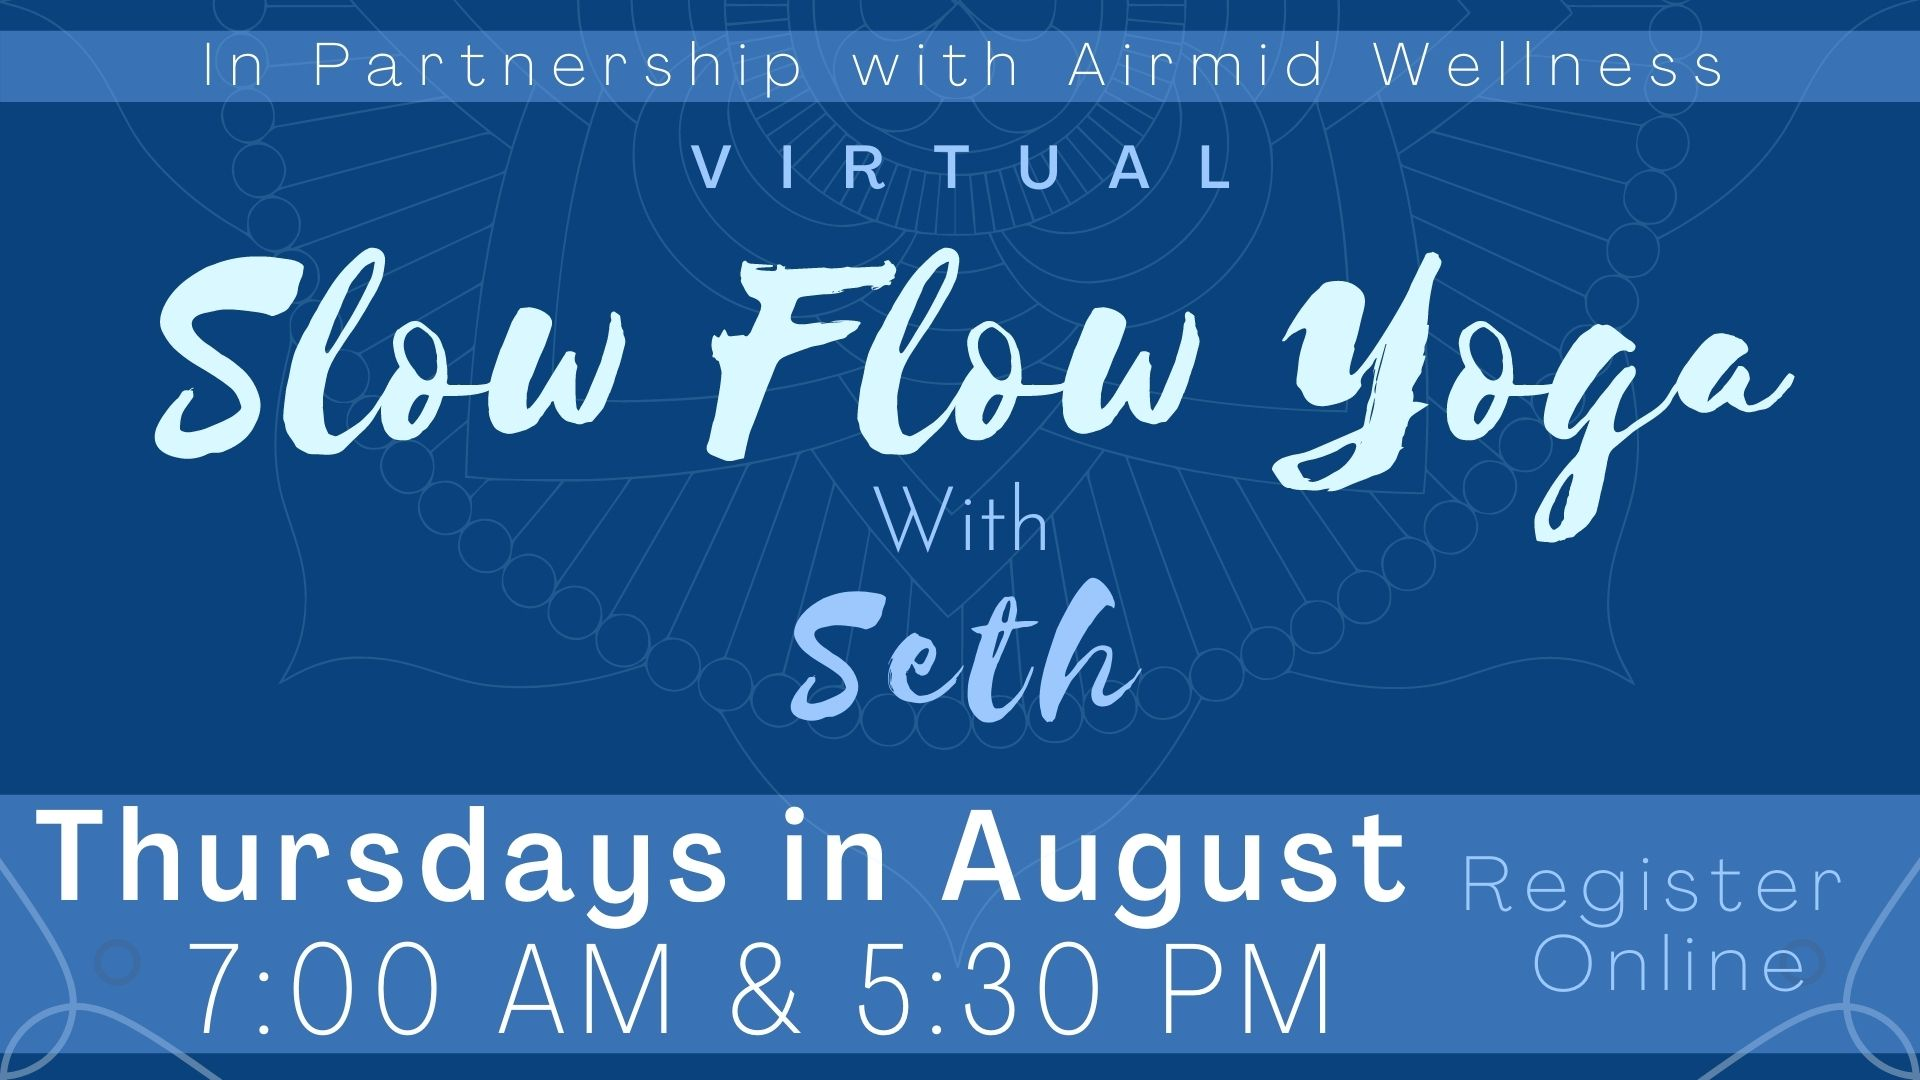 Virtual slow Flow Yoga with Seth